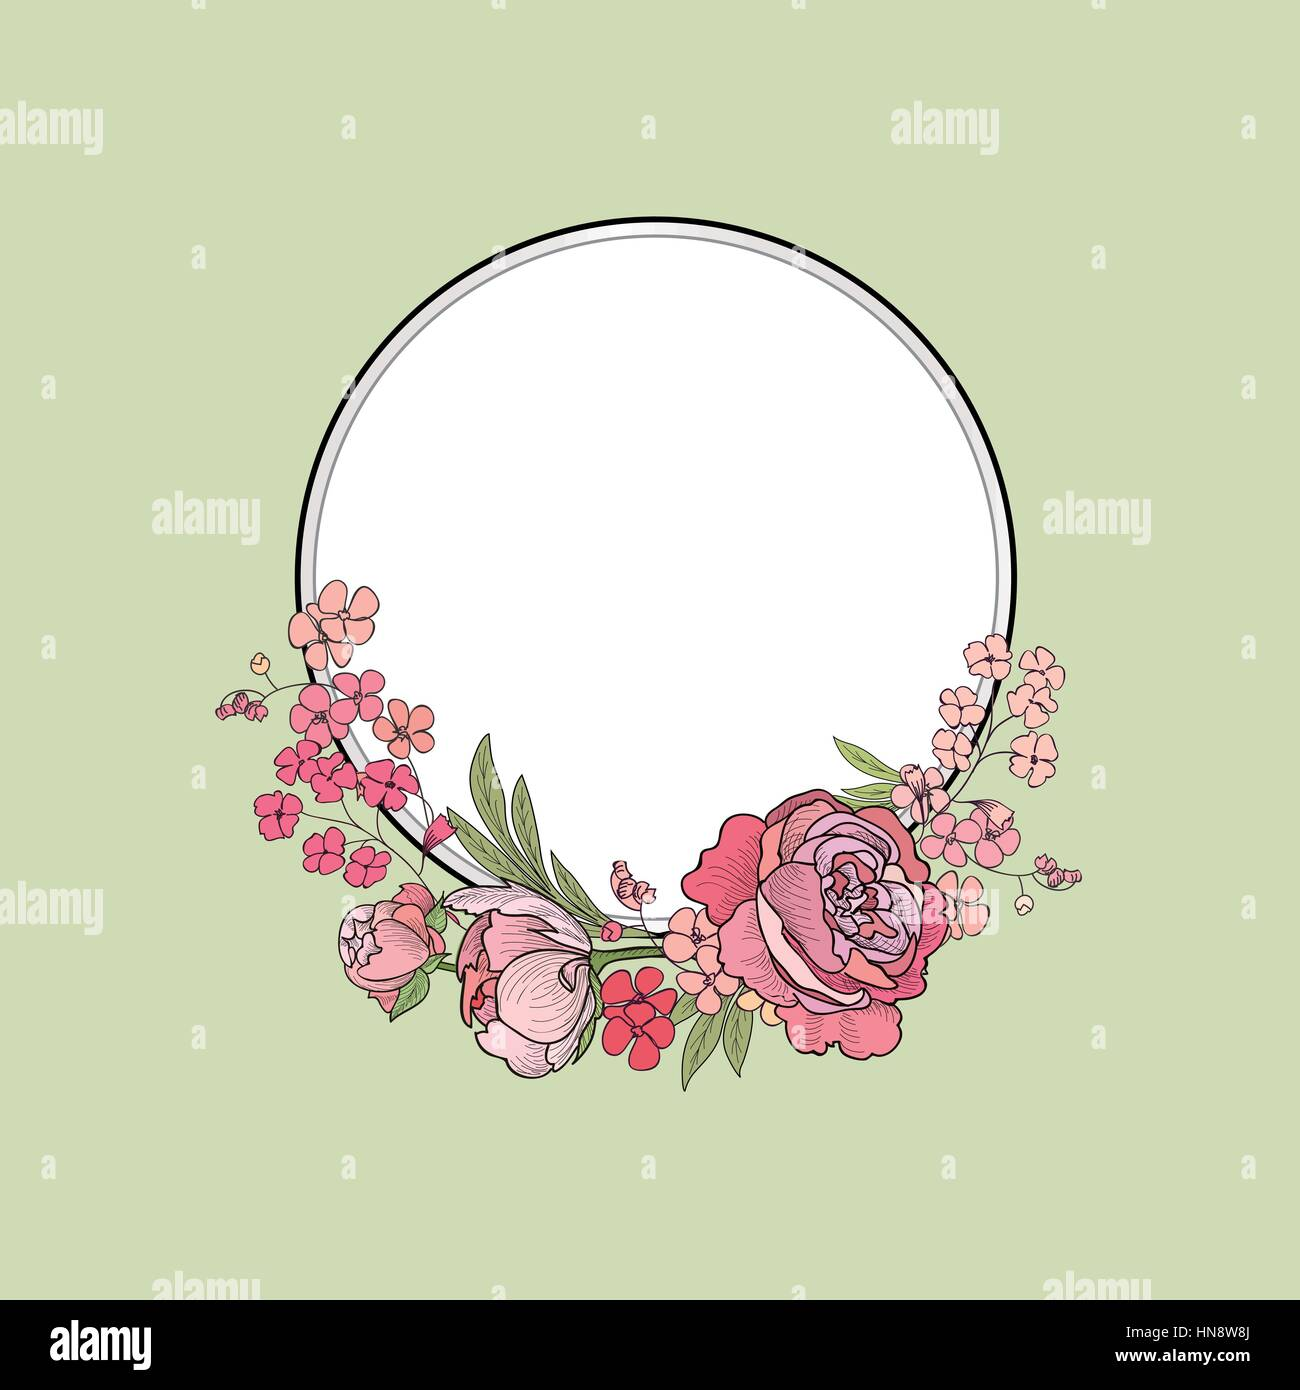 Flower frame. Floral border. Summer flourish background. - Stock Image